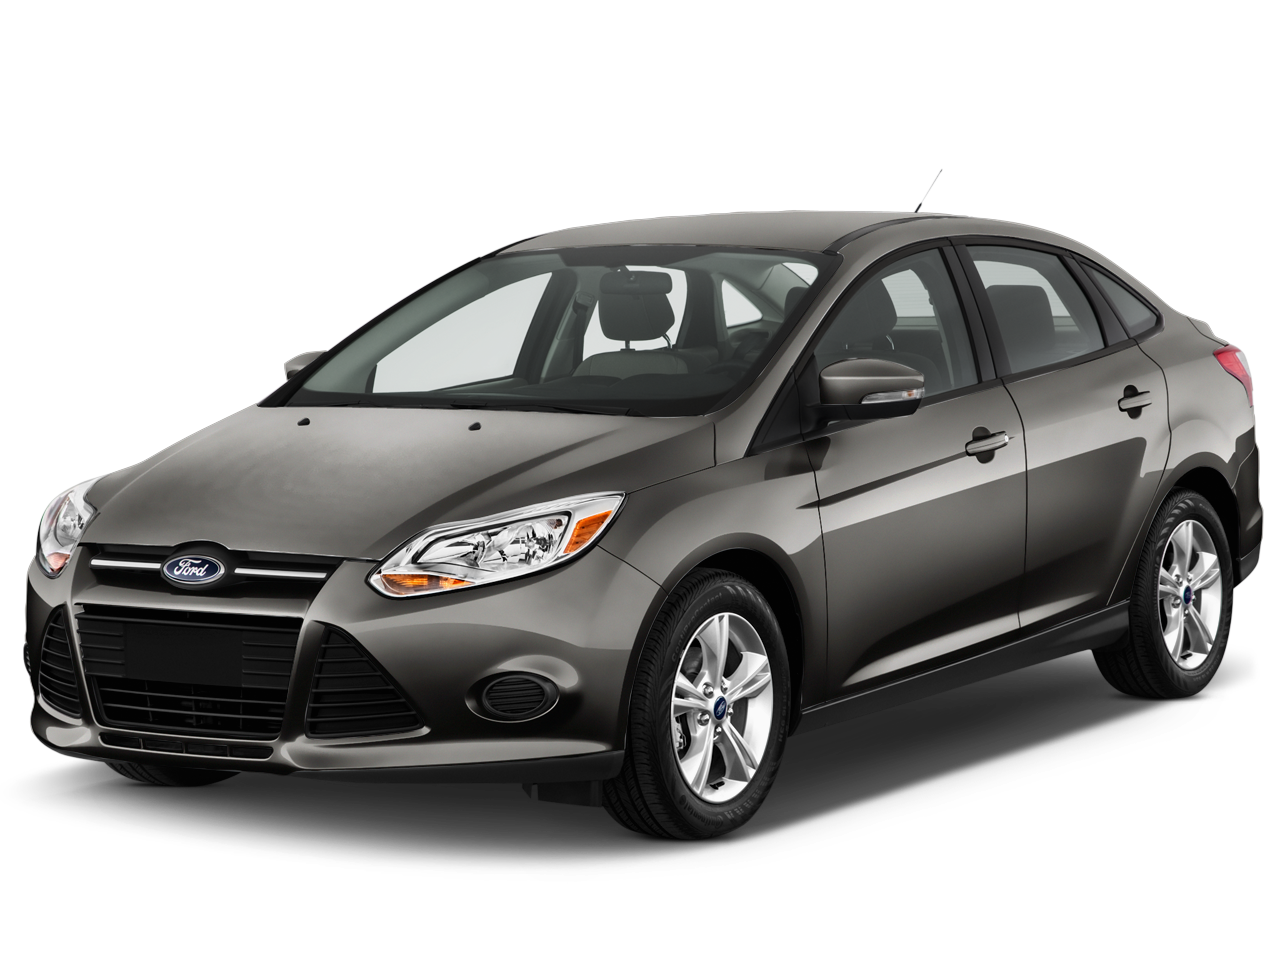 used one owner 2014 ford focus se near lexington sc. Black Bedroom Furniture Sets. Home Design Ideas